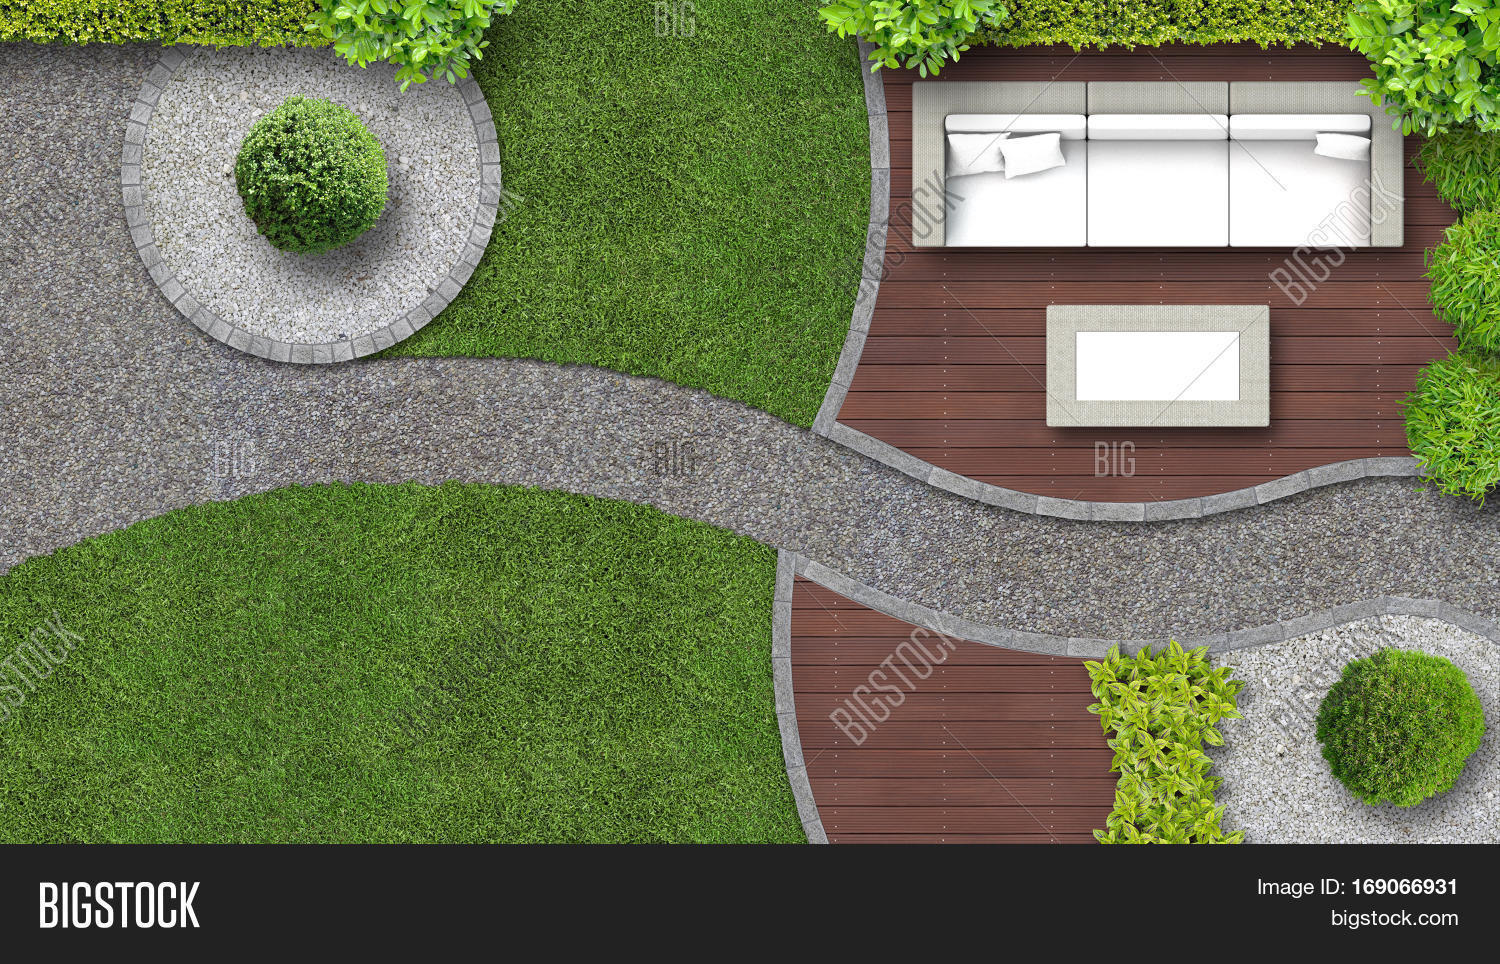 Garden Design Top View Including Image Photo Bigstock